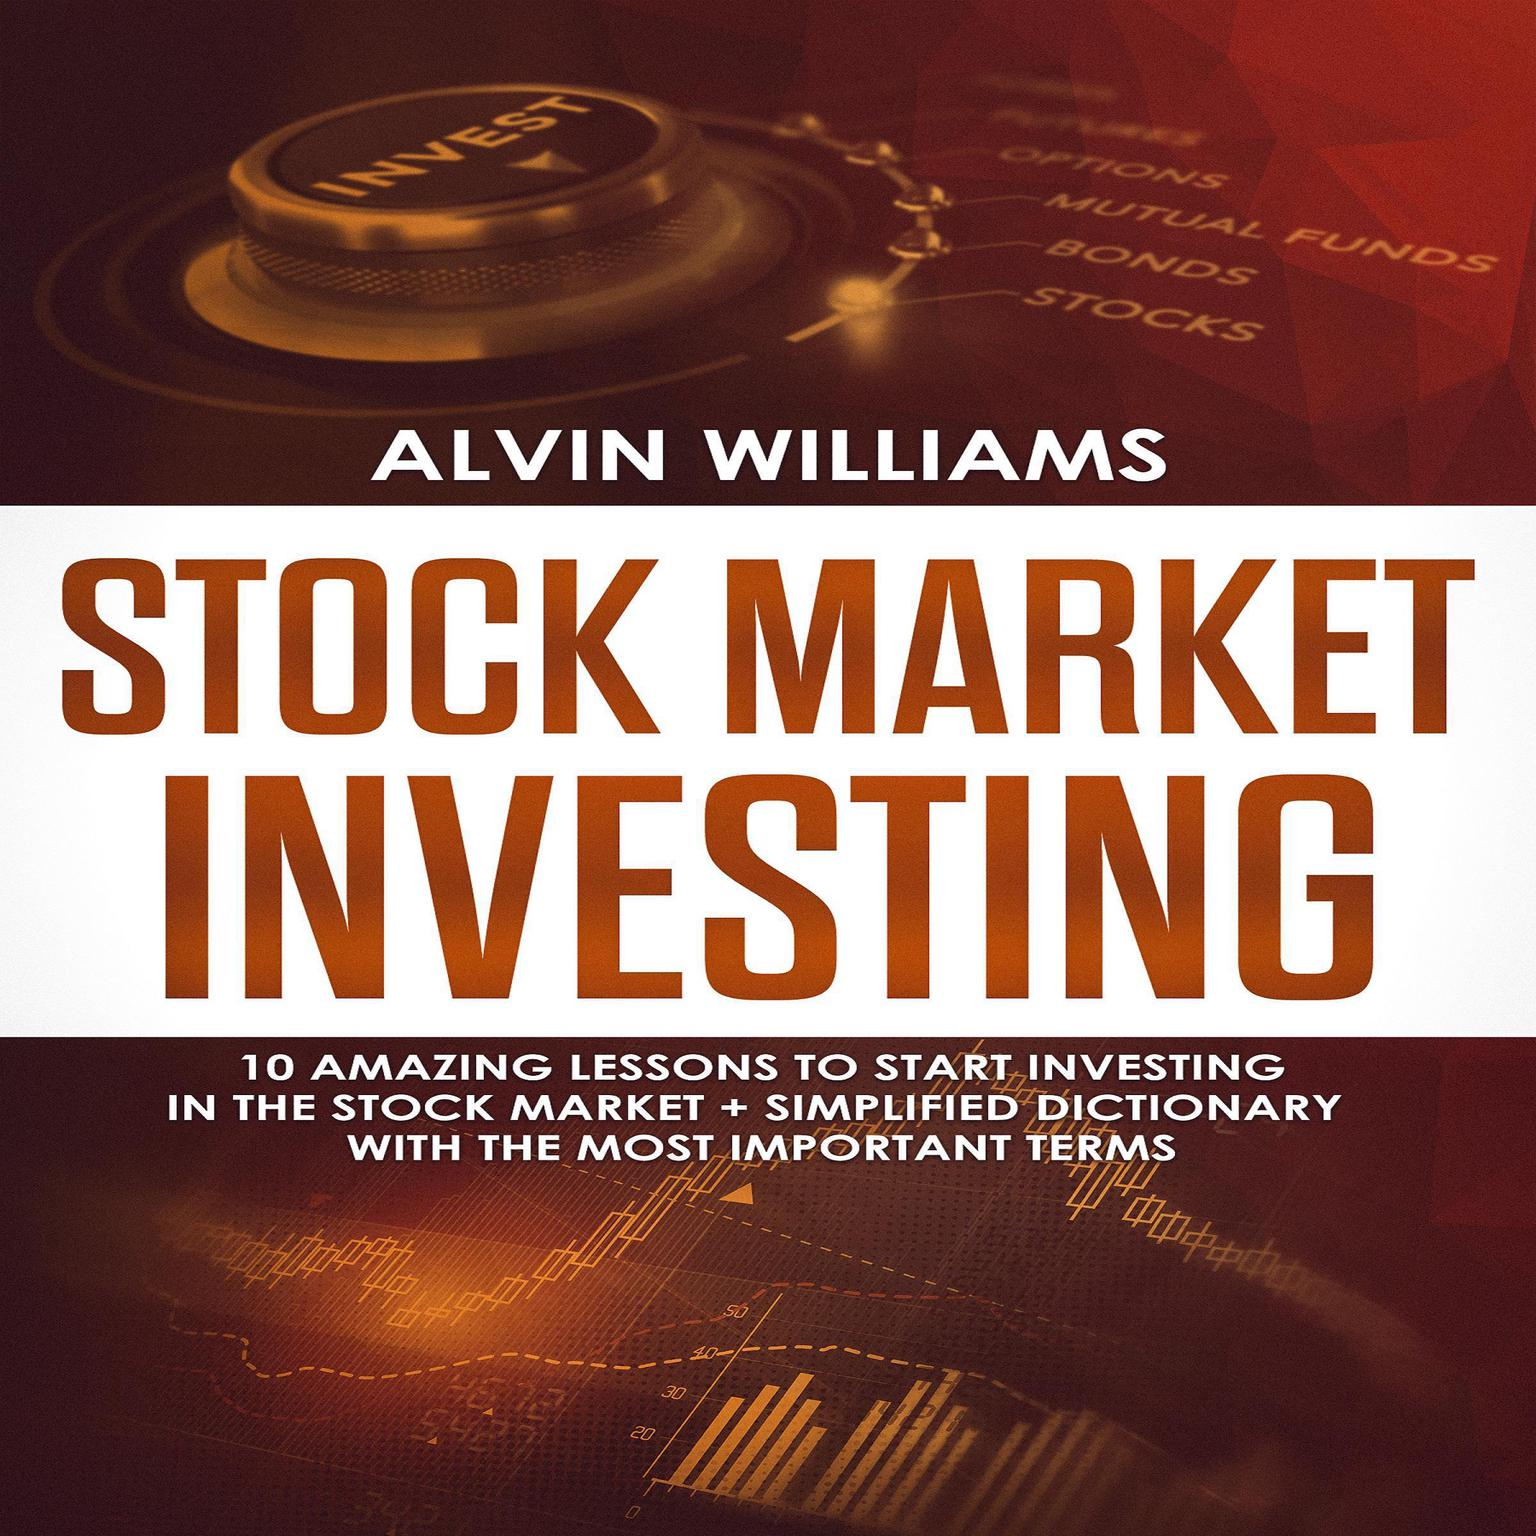 Stock Market Investing: 10 Amazing Lessons to start Investing in the Stock Market + Simplified Dictionary with the Most Important Terms (Abridged) Audiobook, by Alvin Williams